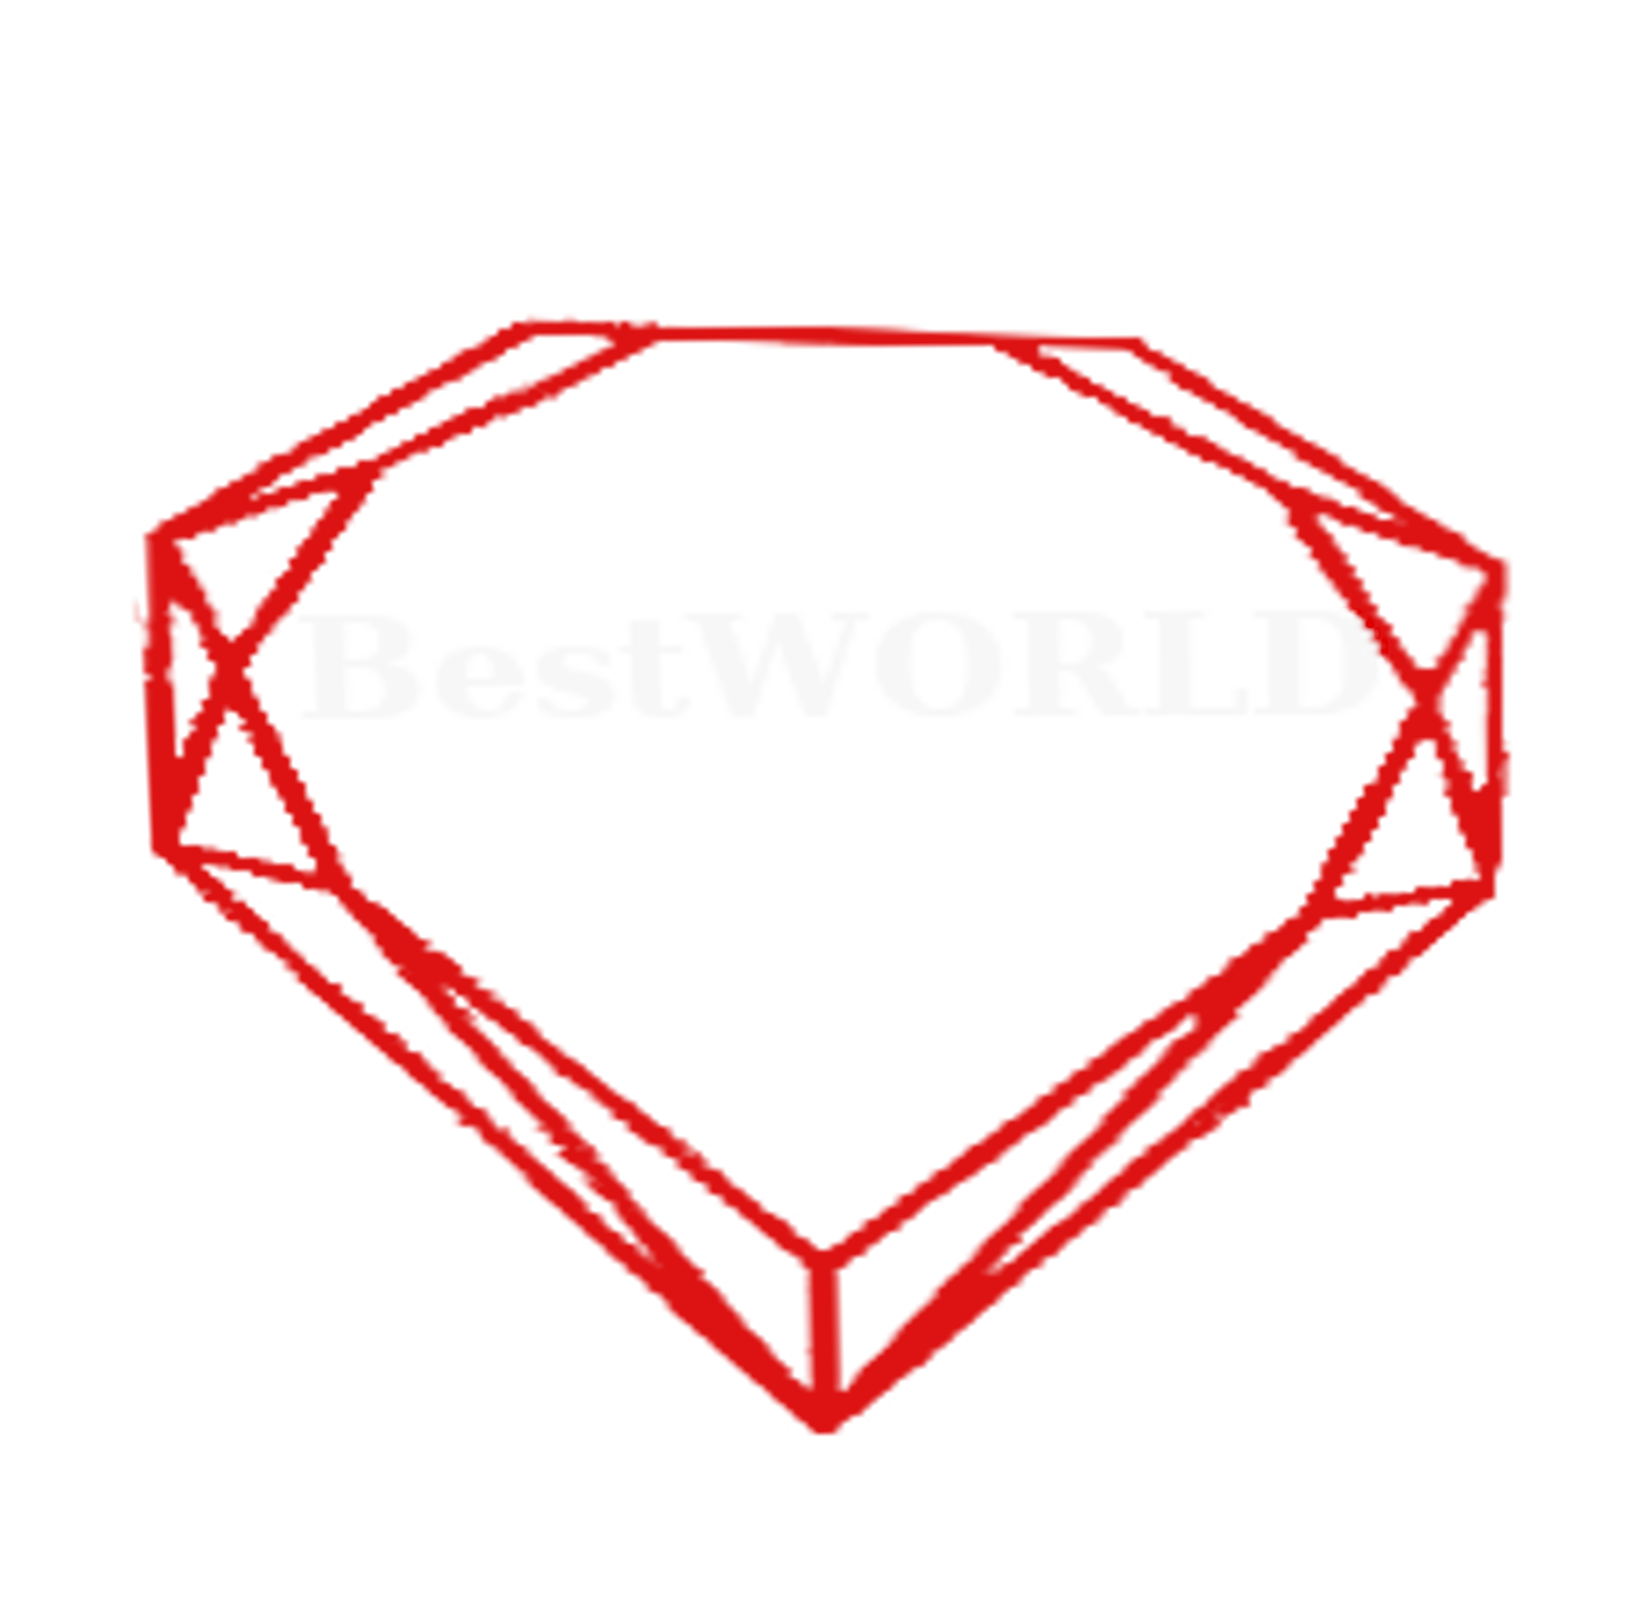 Logistics Security - BestWORLD Security Services